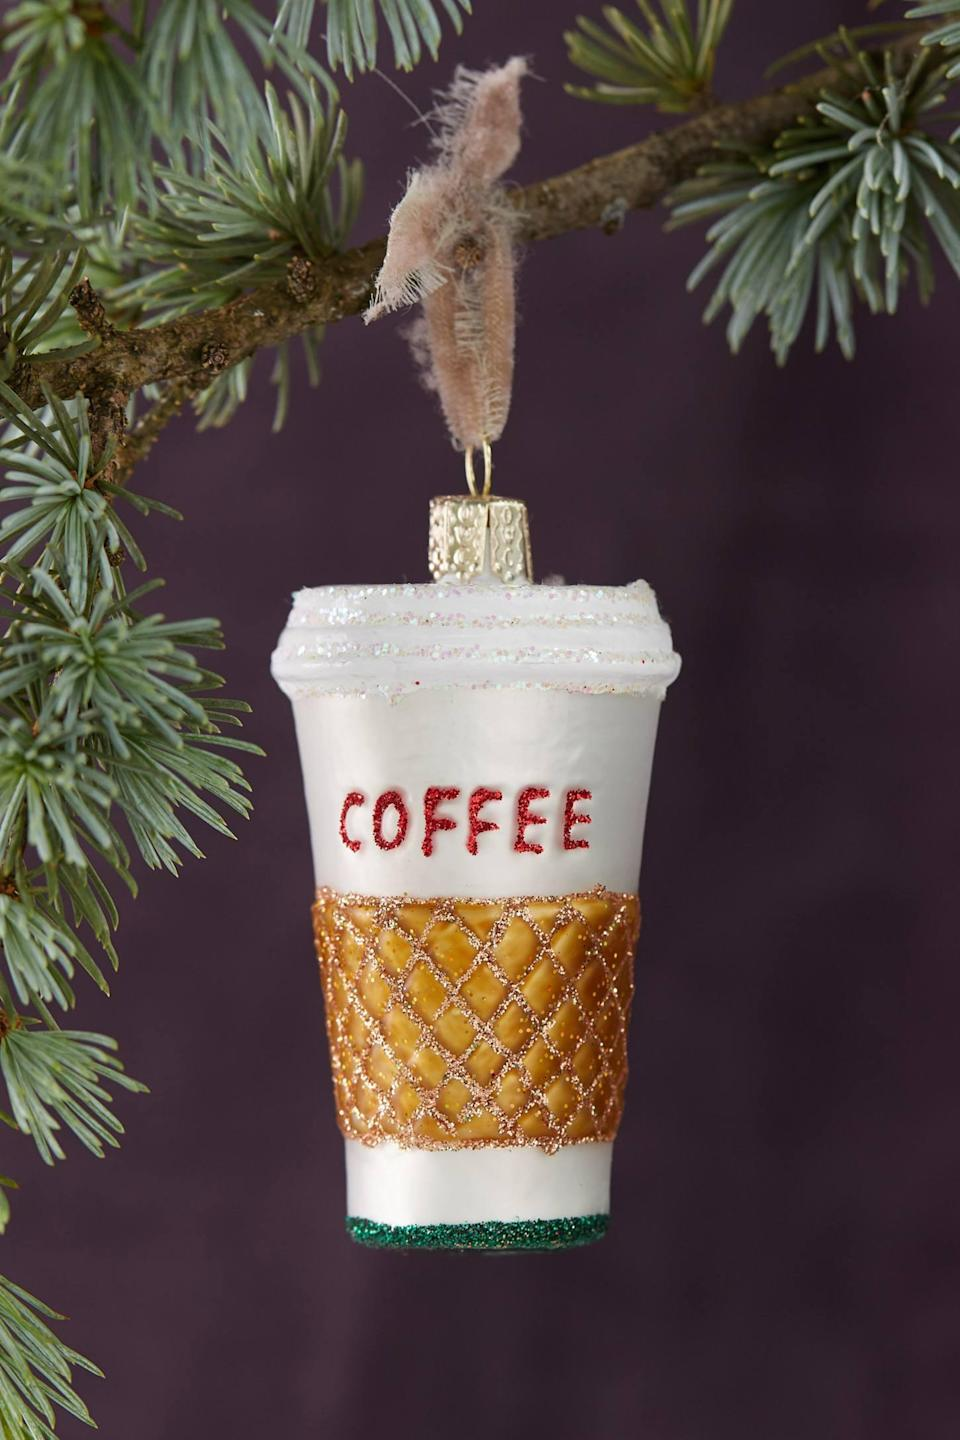 """<p>If you love coffee as much as the next person, this <a href=""""https://www.popsugar.com/buy/Go-Coffee-Glass-Ornament-502216?p_name=To%20Go%20Coffee%20Glass%20Ornament&retailer=anthropologie.com&pid=502216&price=28&evar1=casa%3Aus&evar9=46615300&evar98=https%3A%2F%2Fwww.popsugar.com%2Fhome%2Fphoto-gallery%2F46615300%2Fimage%2F46767574%2FTo-Go-Coffee-Glass-Ornament&list1=shopping%2Canthropologie%2Choliday%2Cchristmas%2Cchristmas%20decorations%2Choliday%20decor%2Chome%20shopping&prop13=mobile&pdata=1"""" rel=""""nofollow noopener"""" class=""""link rapid-noclick-resp"""" target=""""_blank"""" data-ylk=""""slk:To Go Coffee Glass Ornament"""">To Go Coffee Glass Ornament</a> ($28) is a must have.</p>"""